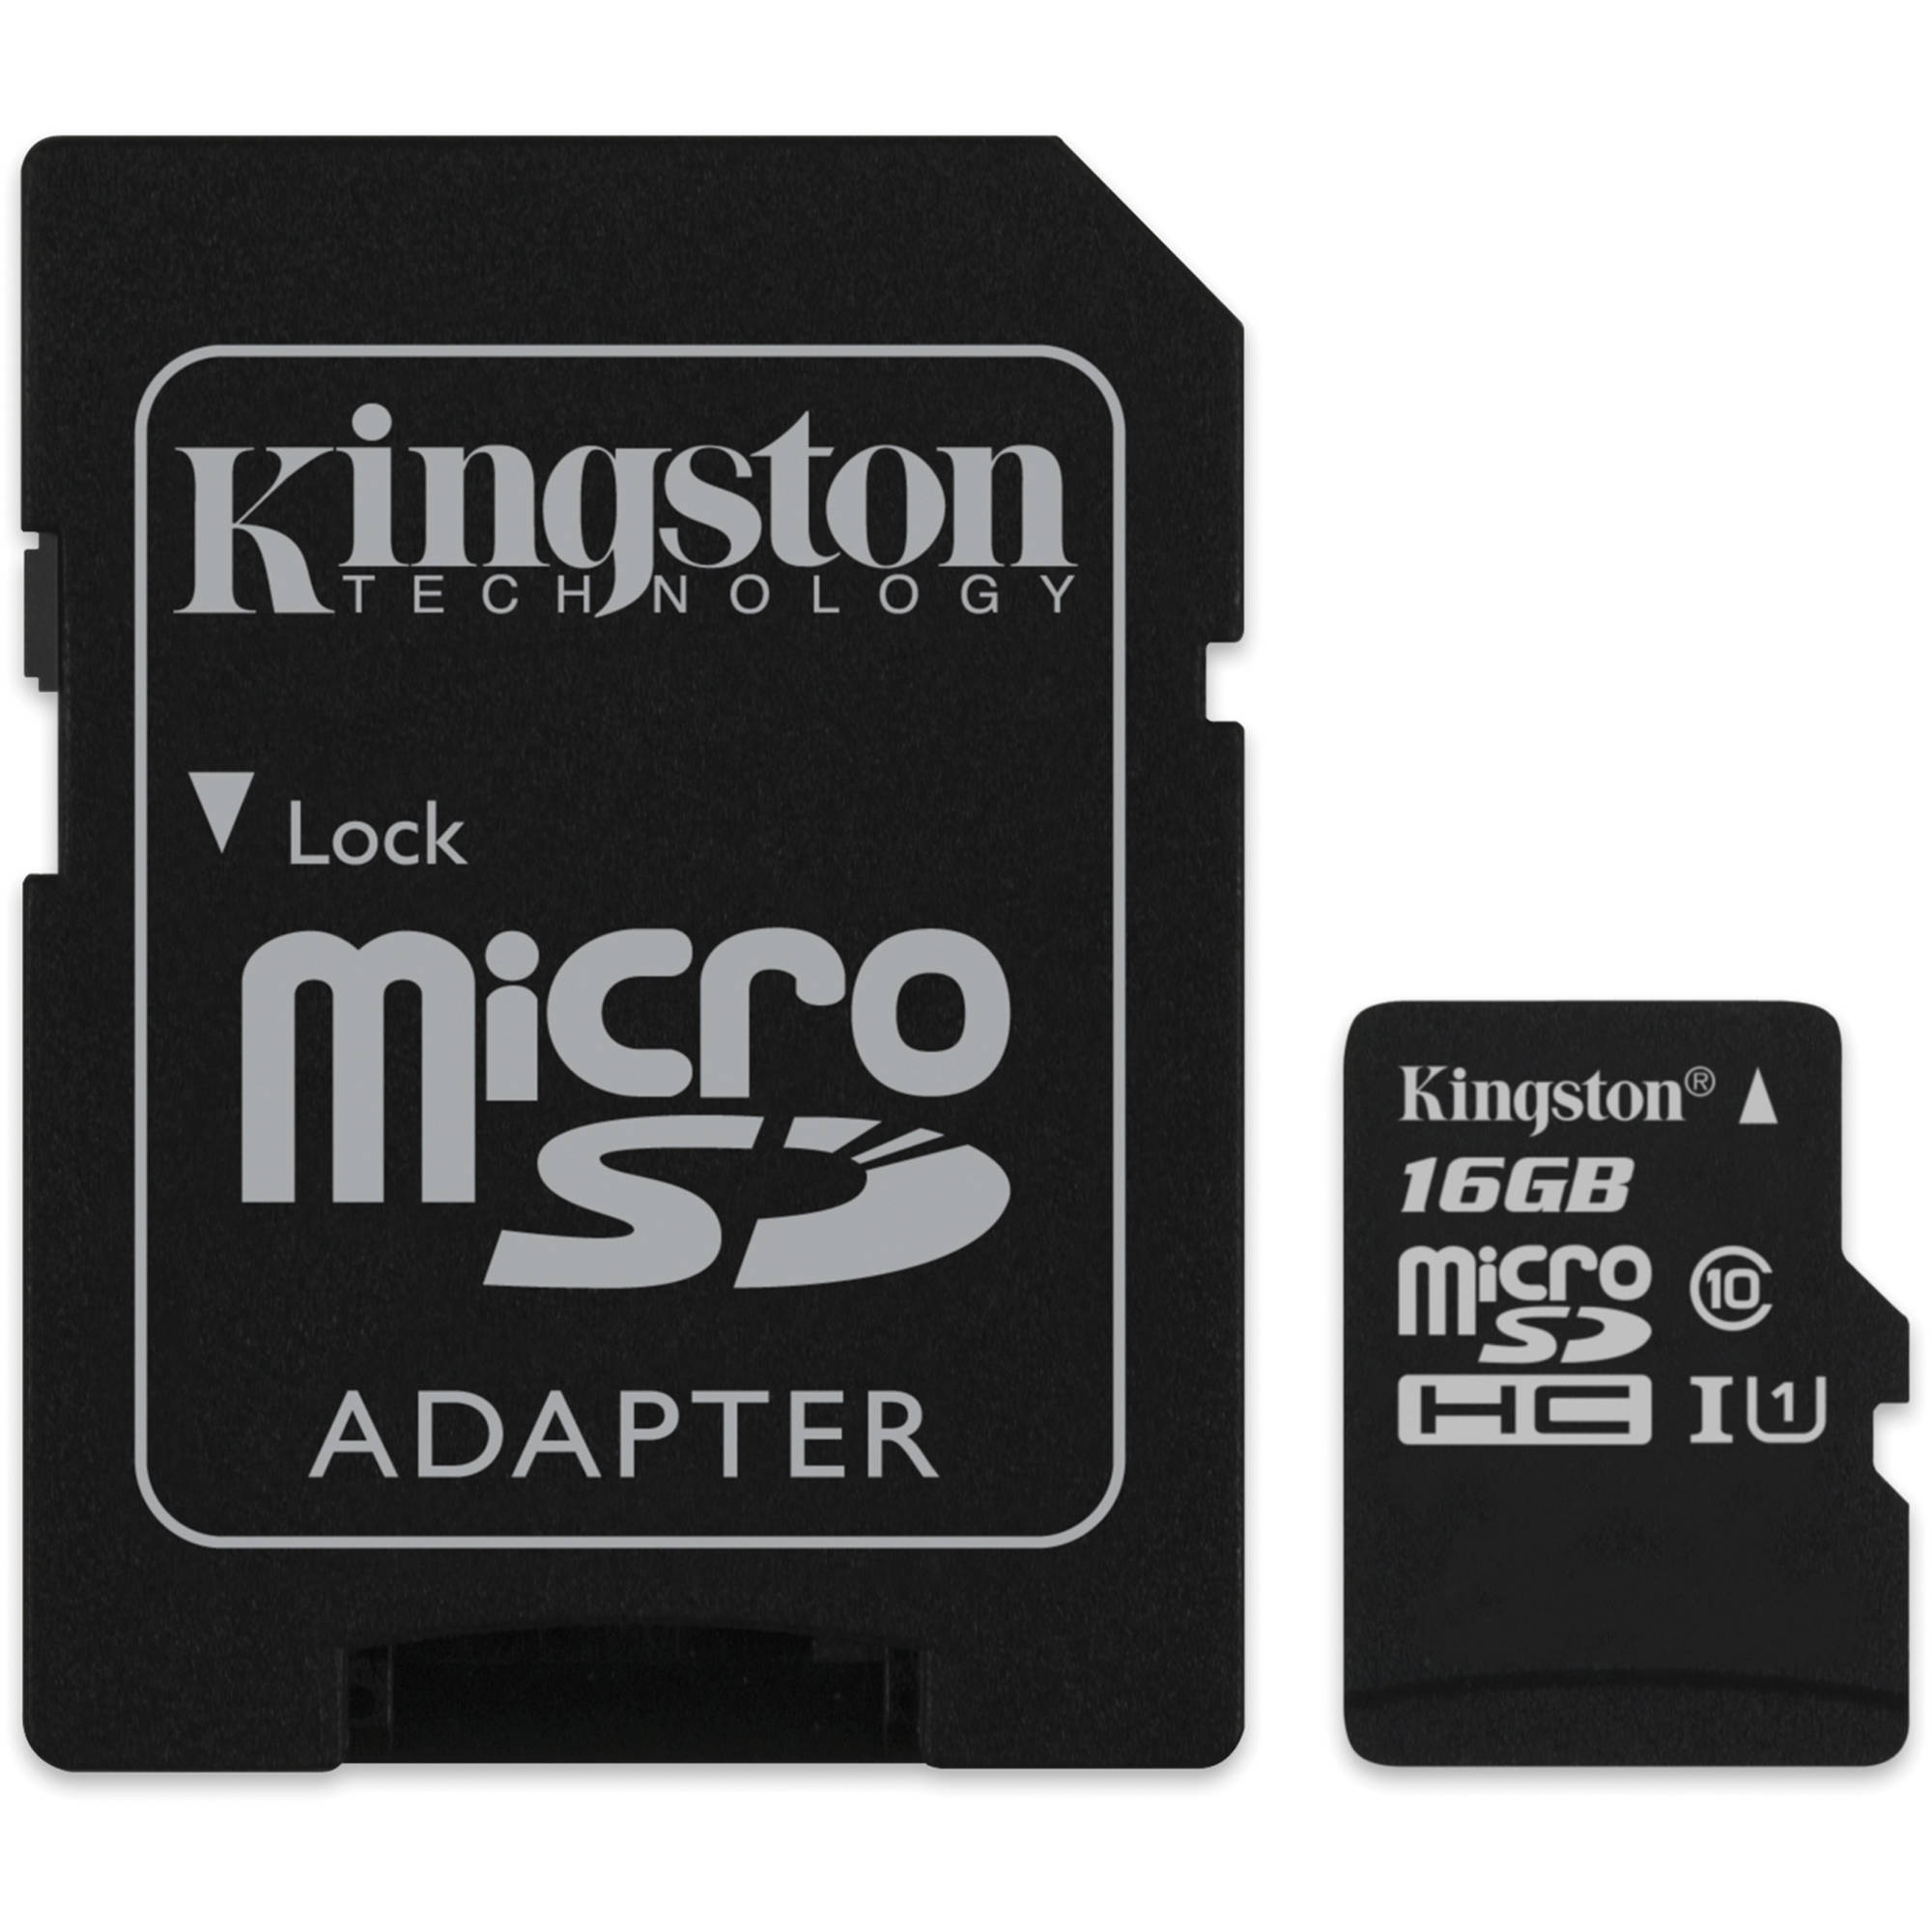 Kingston micro sd hc Memory Card 16gb class 10 with adapter sd